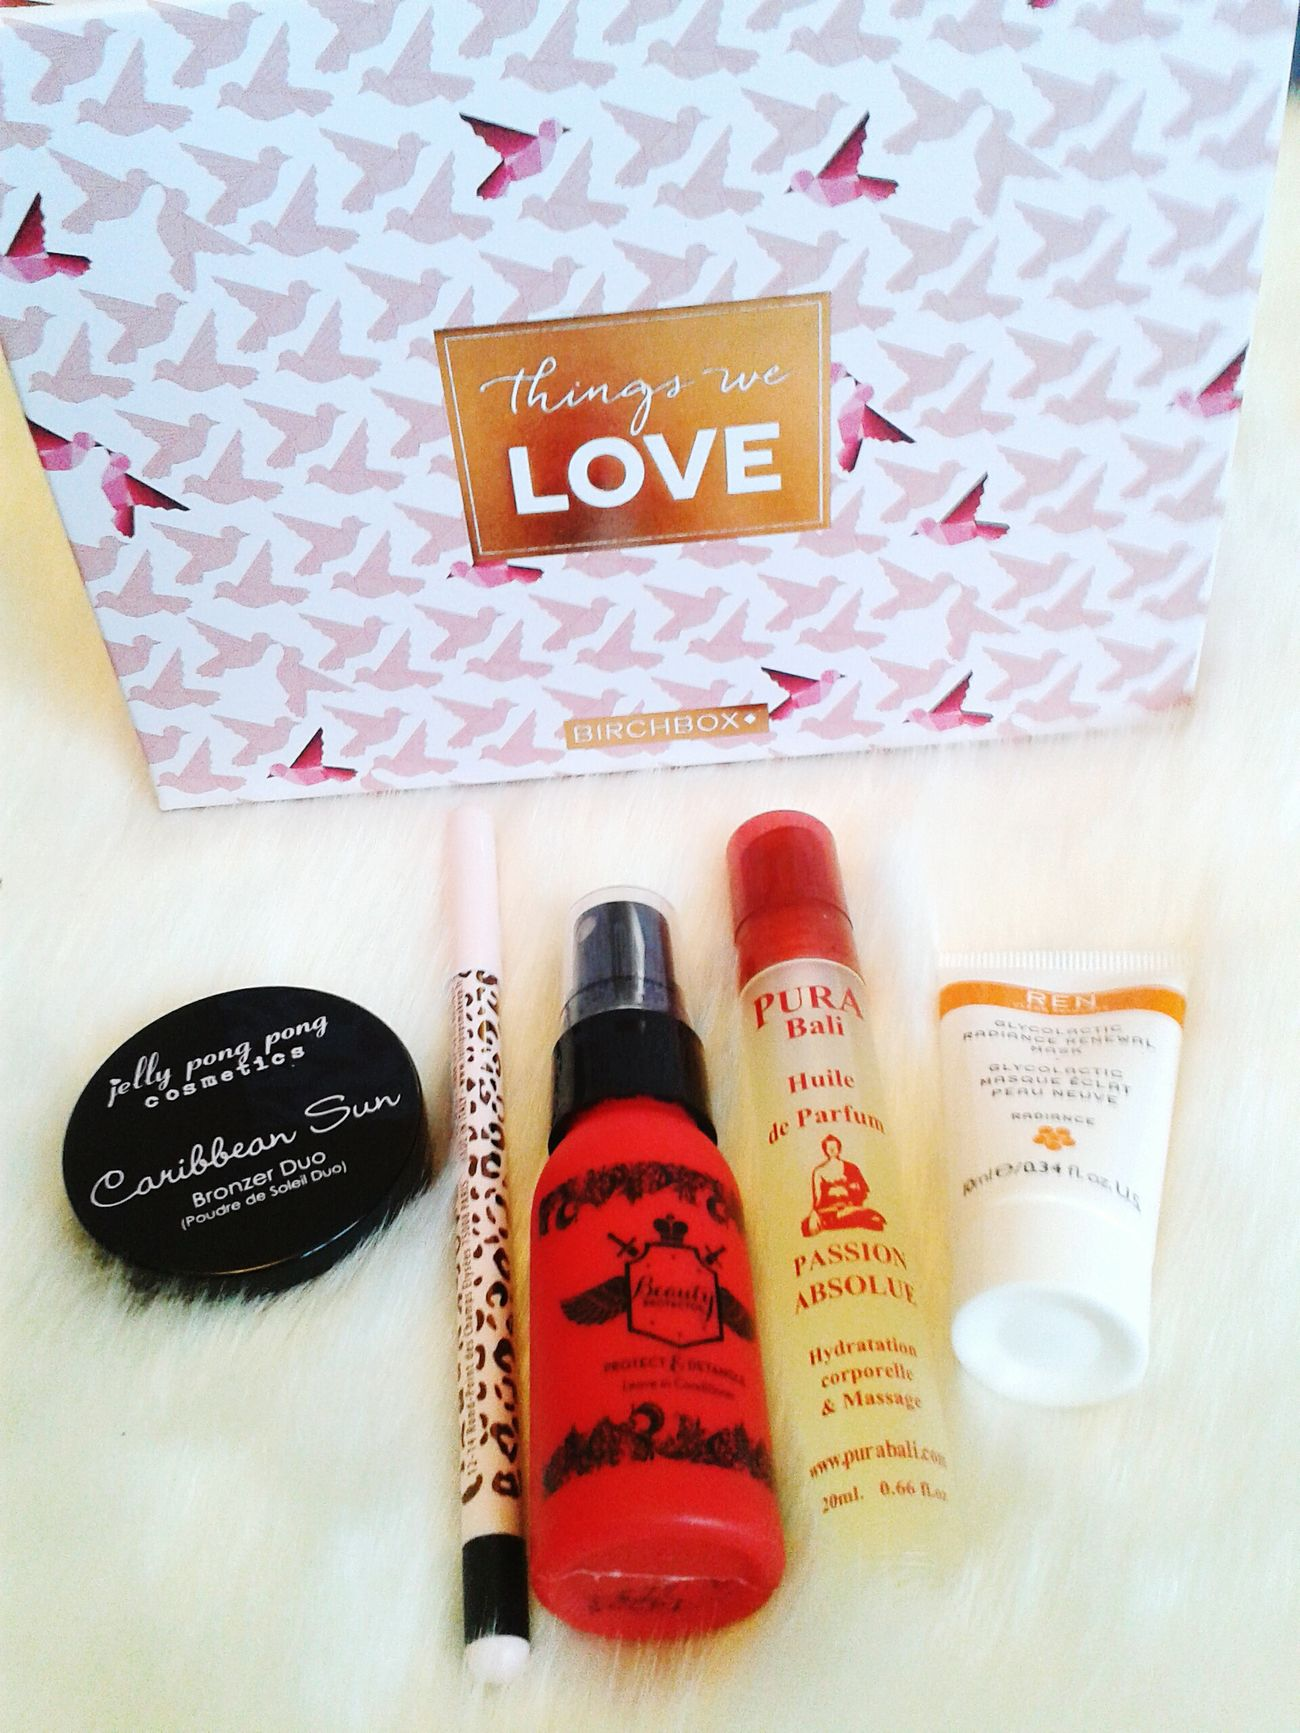 Birchbox Things We Love Box Beauty Makeup ♥ Mailbox February